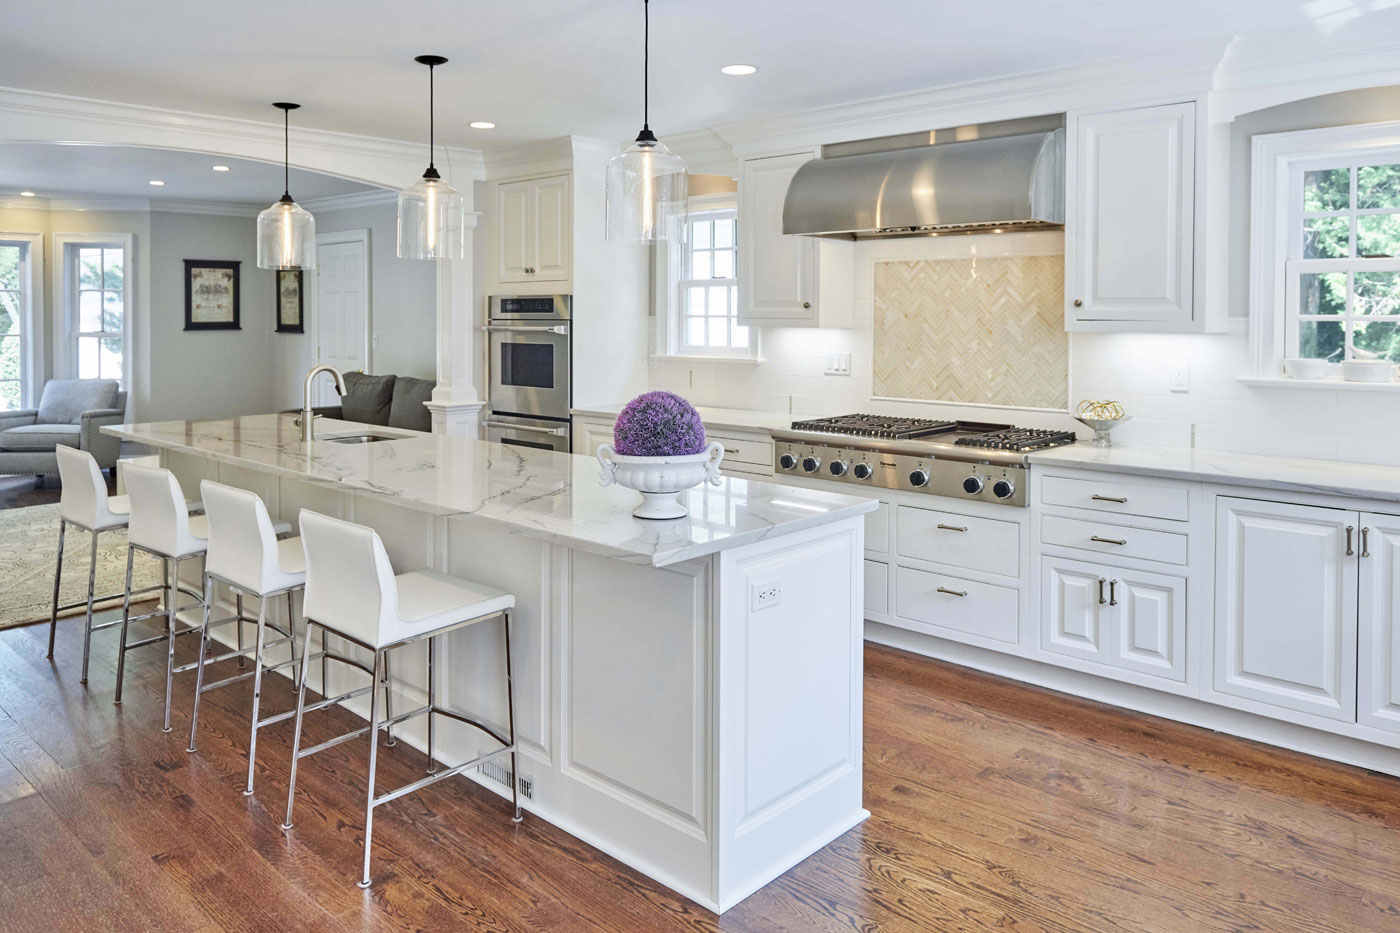 maria-matluck-kitchen-designer-remodeling-connecticut-54